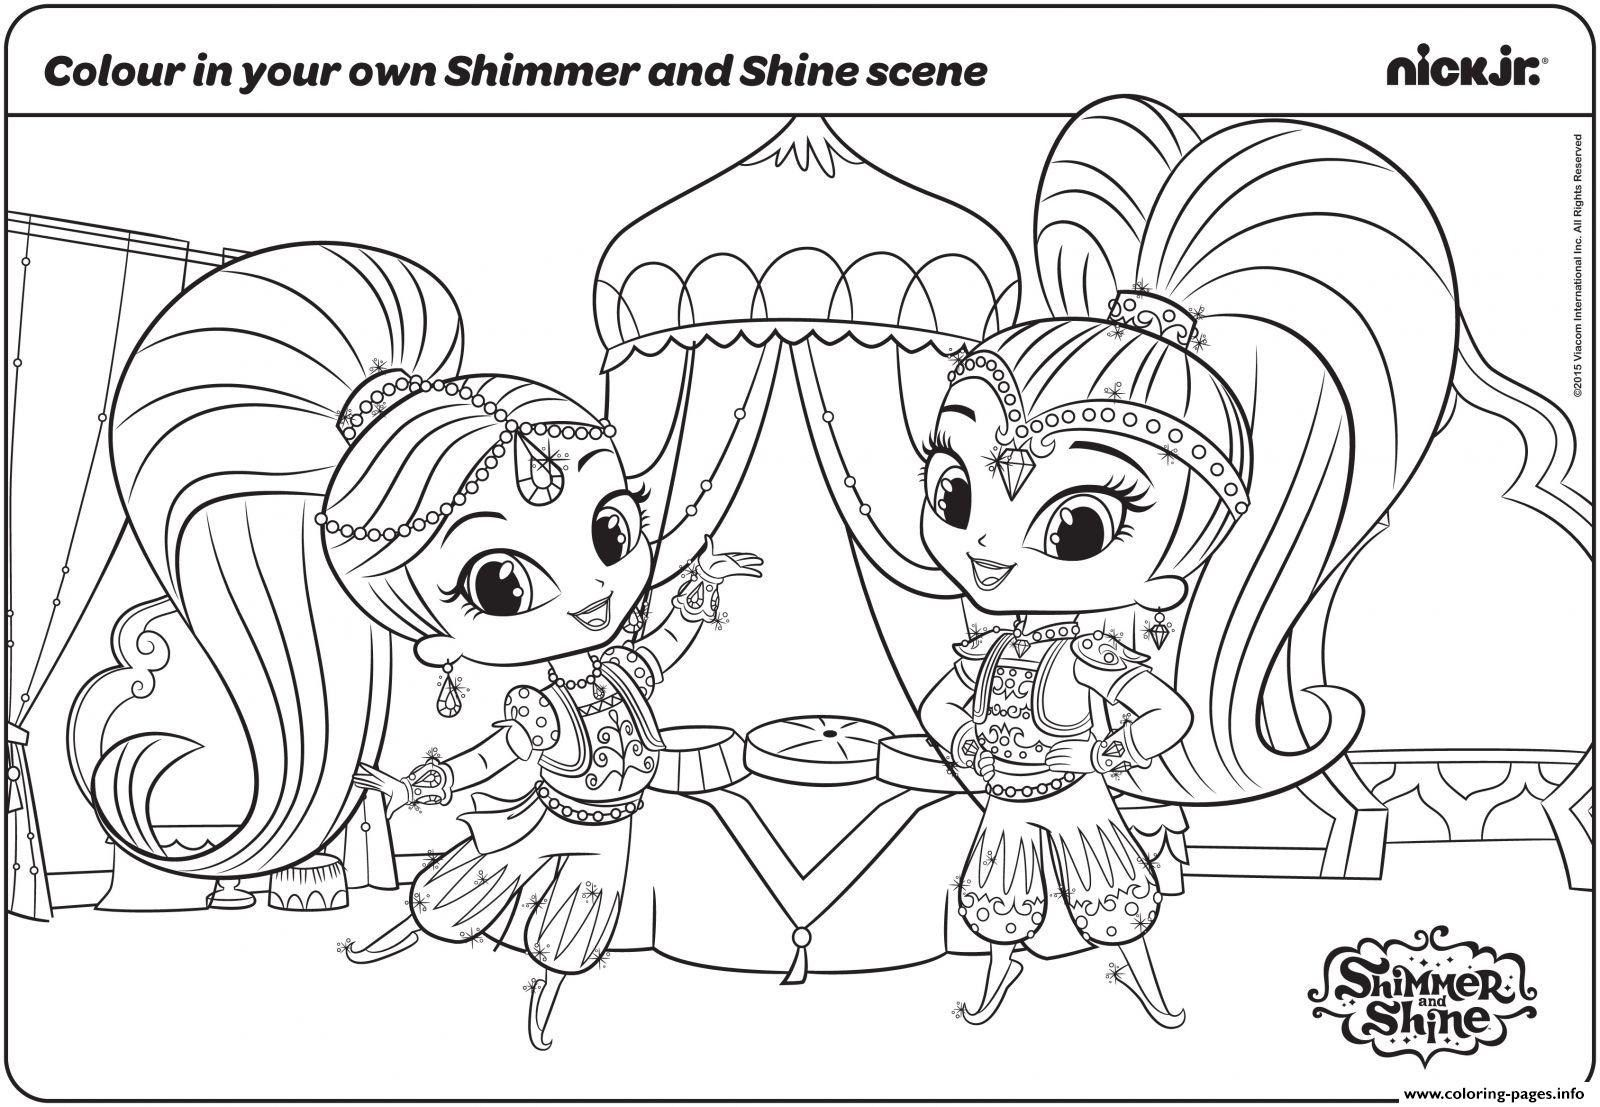 Shimmer And Shine Coloring Pages Shimmer And Shine Coloring Pages Ncpocketsofresistance Birijus Com Coloring Books Coloring Pages Coloring Pages Inspirational